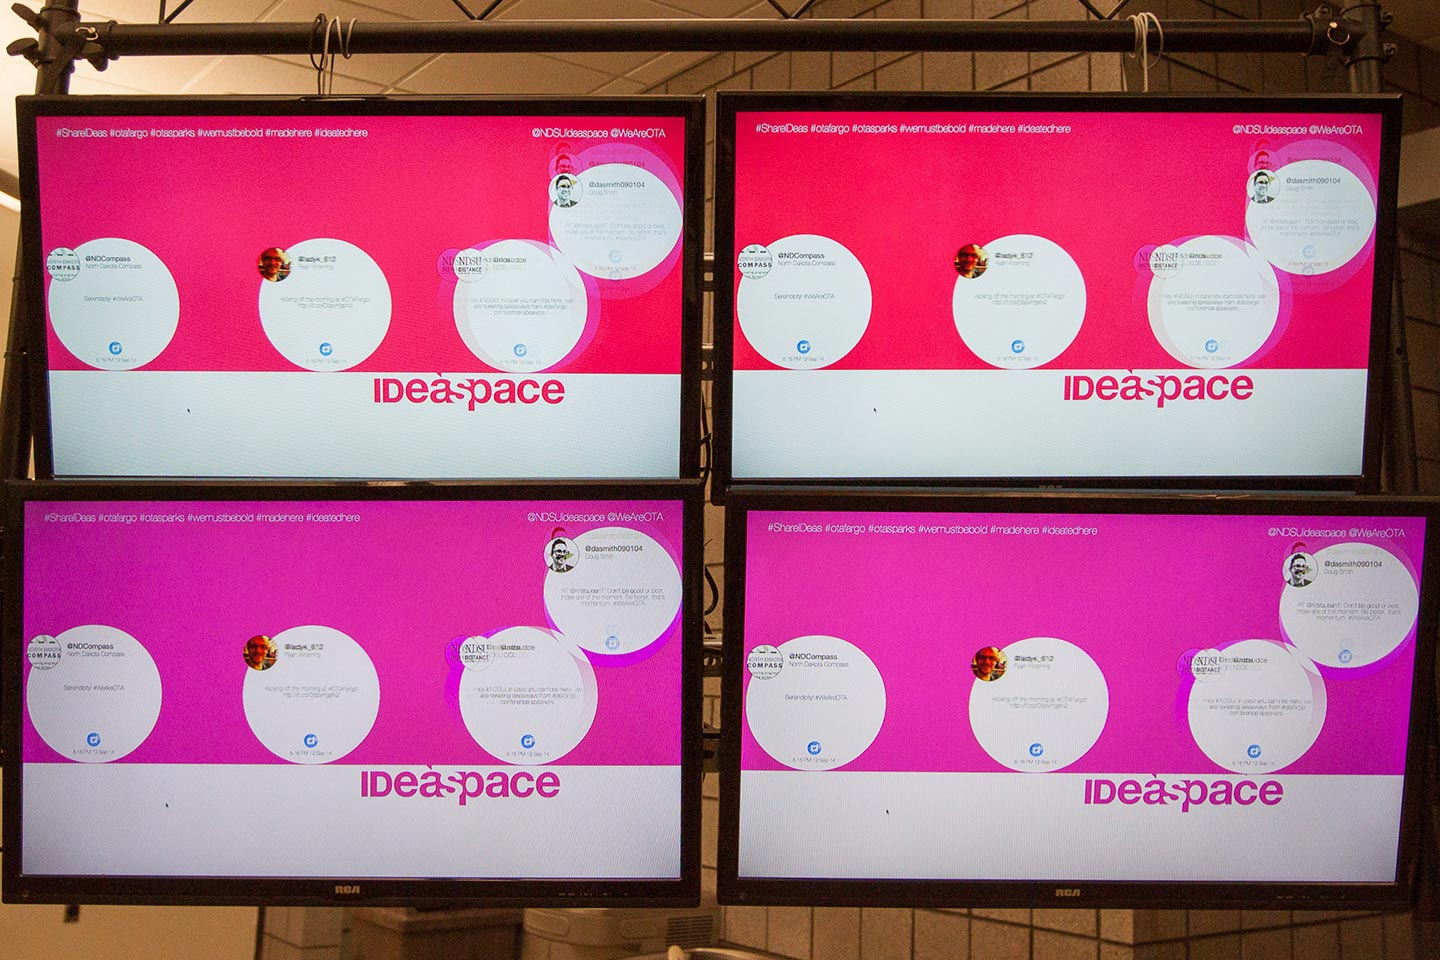 Four TV screens displaying interactive installation digital interface in pink and red